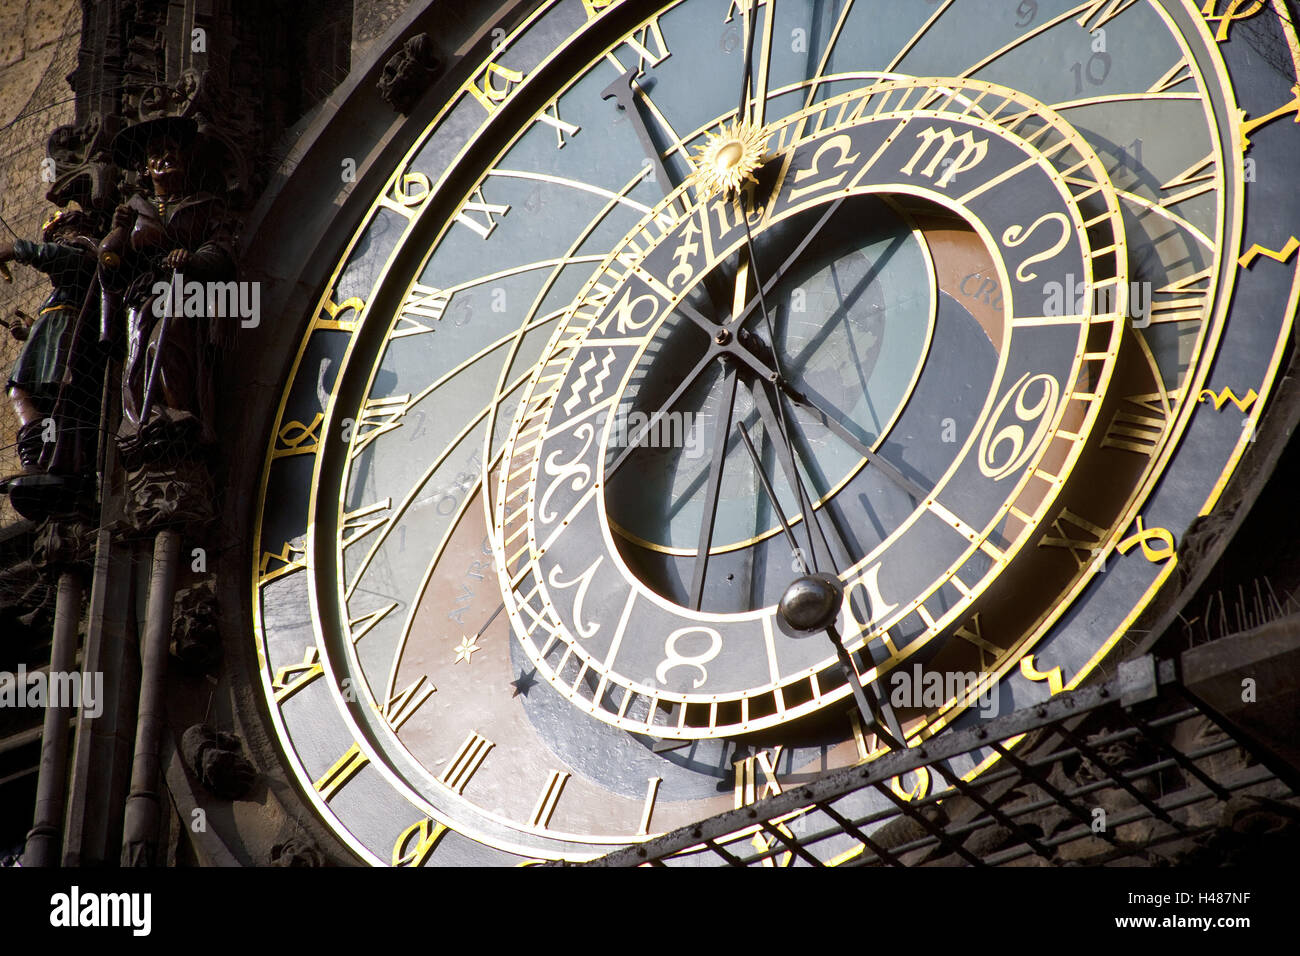 Sundial, town square, marketplace, Old Town, Prague, clock, hand, time, time, time knife, astronomy, - Stock Image